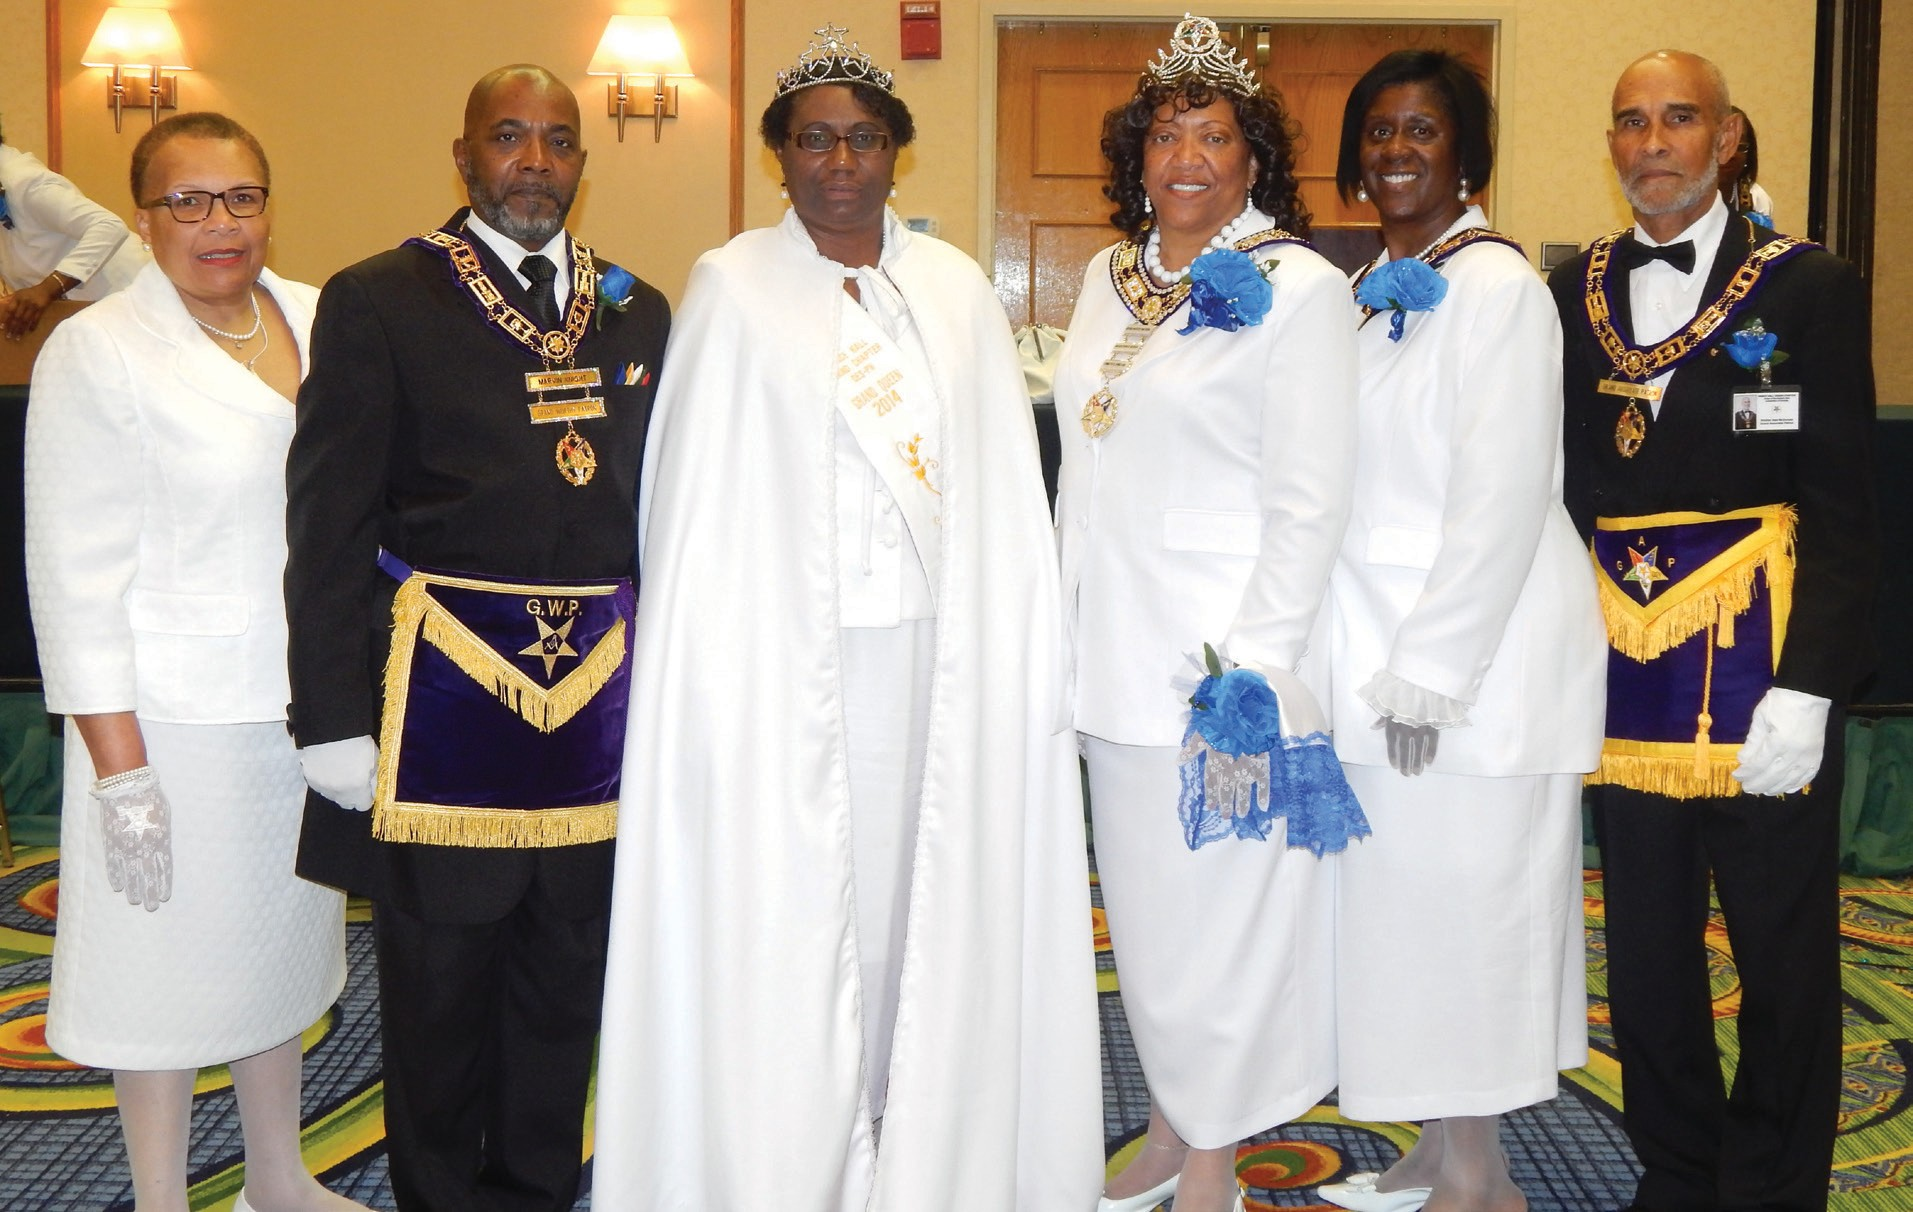 (L-R) Chyrileen Kilcrease, District Worthy Matron, Statesboro District 18; Marvin Knight, Grand Worthy Matron of Georgia; Gloria Hagan, Grand Queen Statesboro District 18; Lynette Hymes Grand Worthy Matron of Georgia; Deaidra Wilson, Grand Associate Matron of Carrollton, Ga and Sam McDonald, Grand Associate Matron of Atlanta